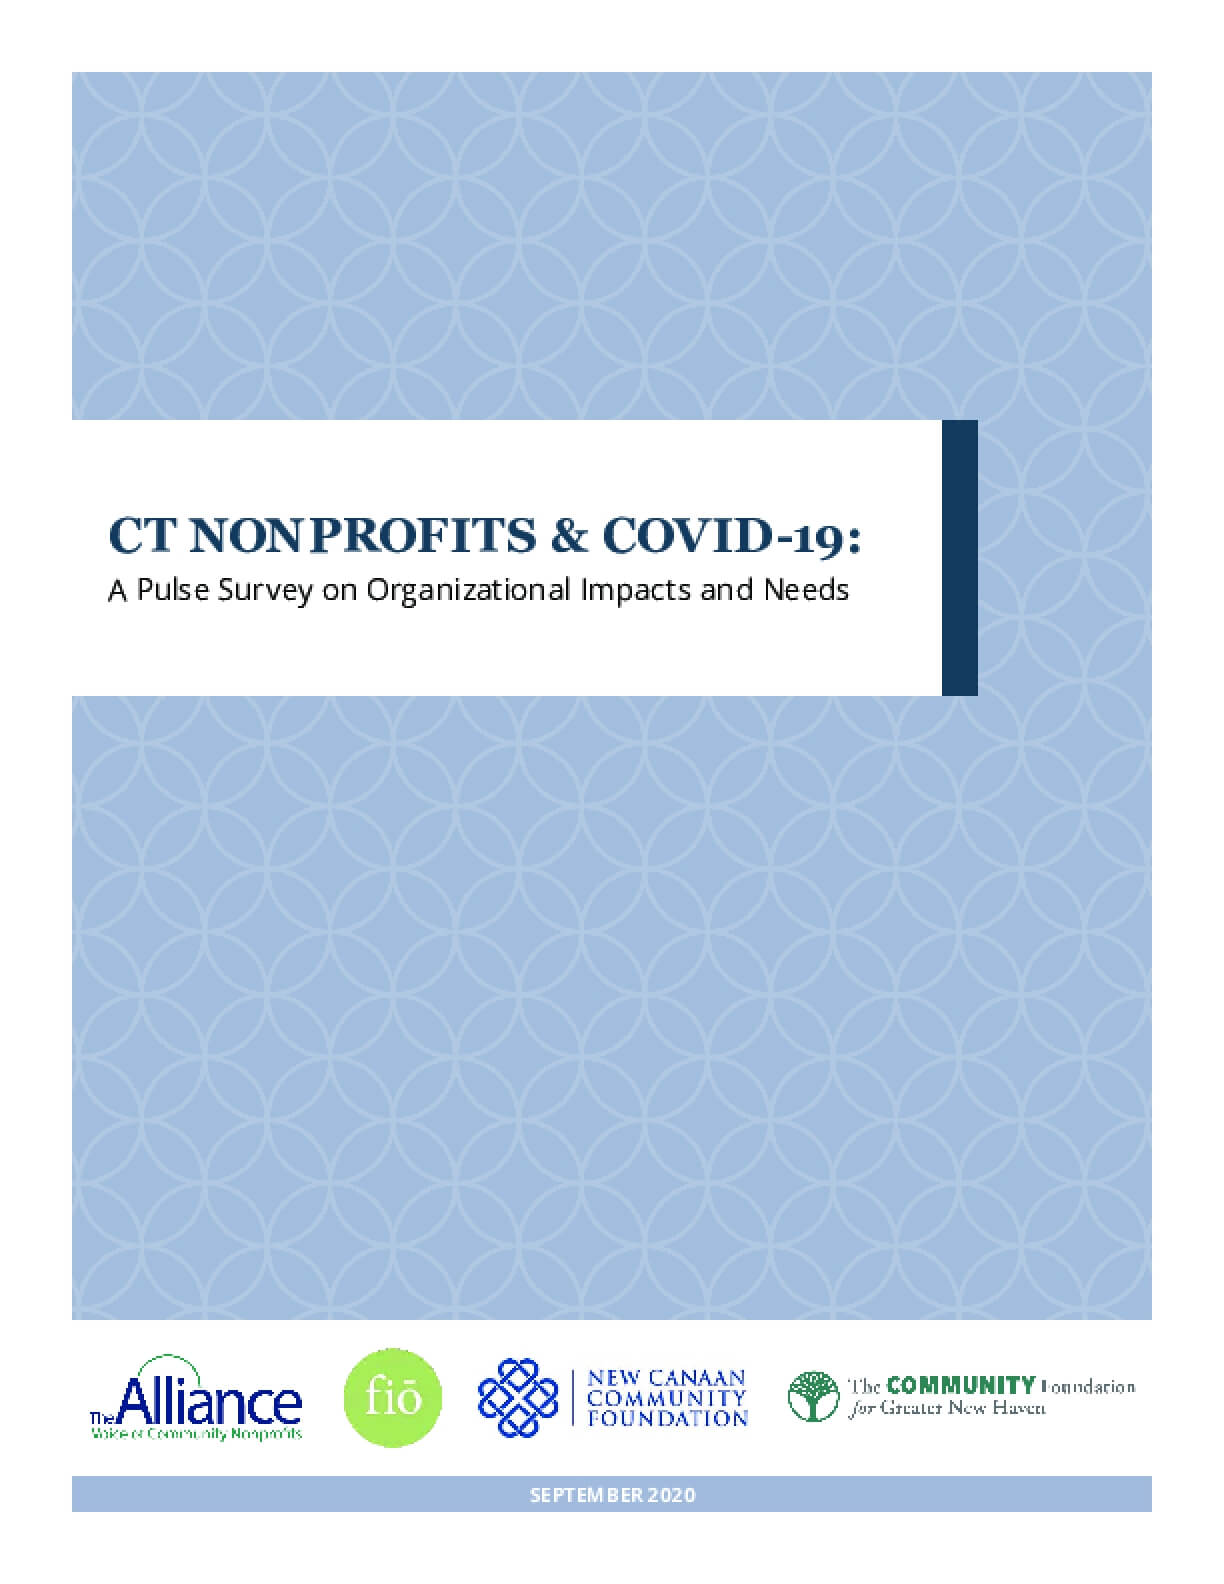 CT Nonprofits & COVID-19: A Pulse Survey on Organizational Impacts and Needs